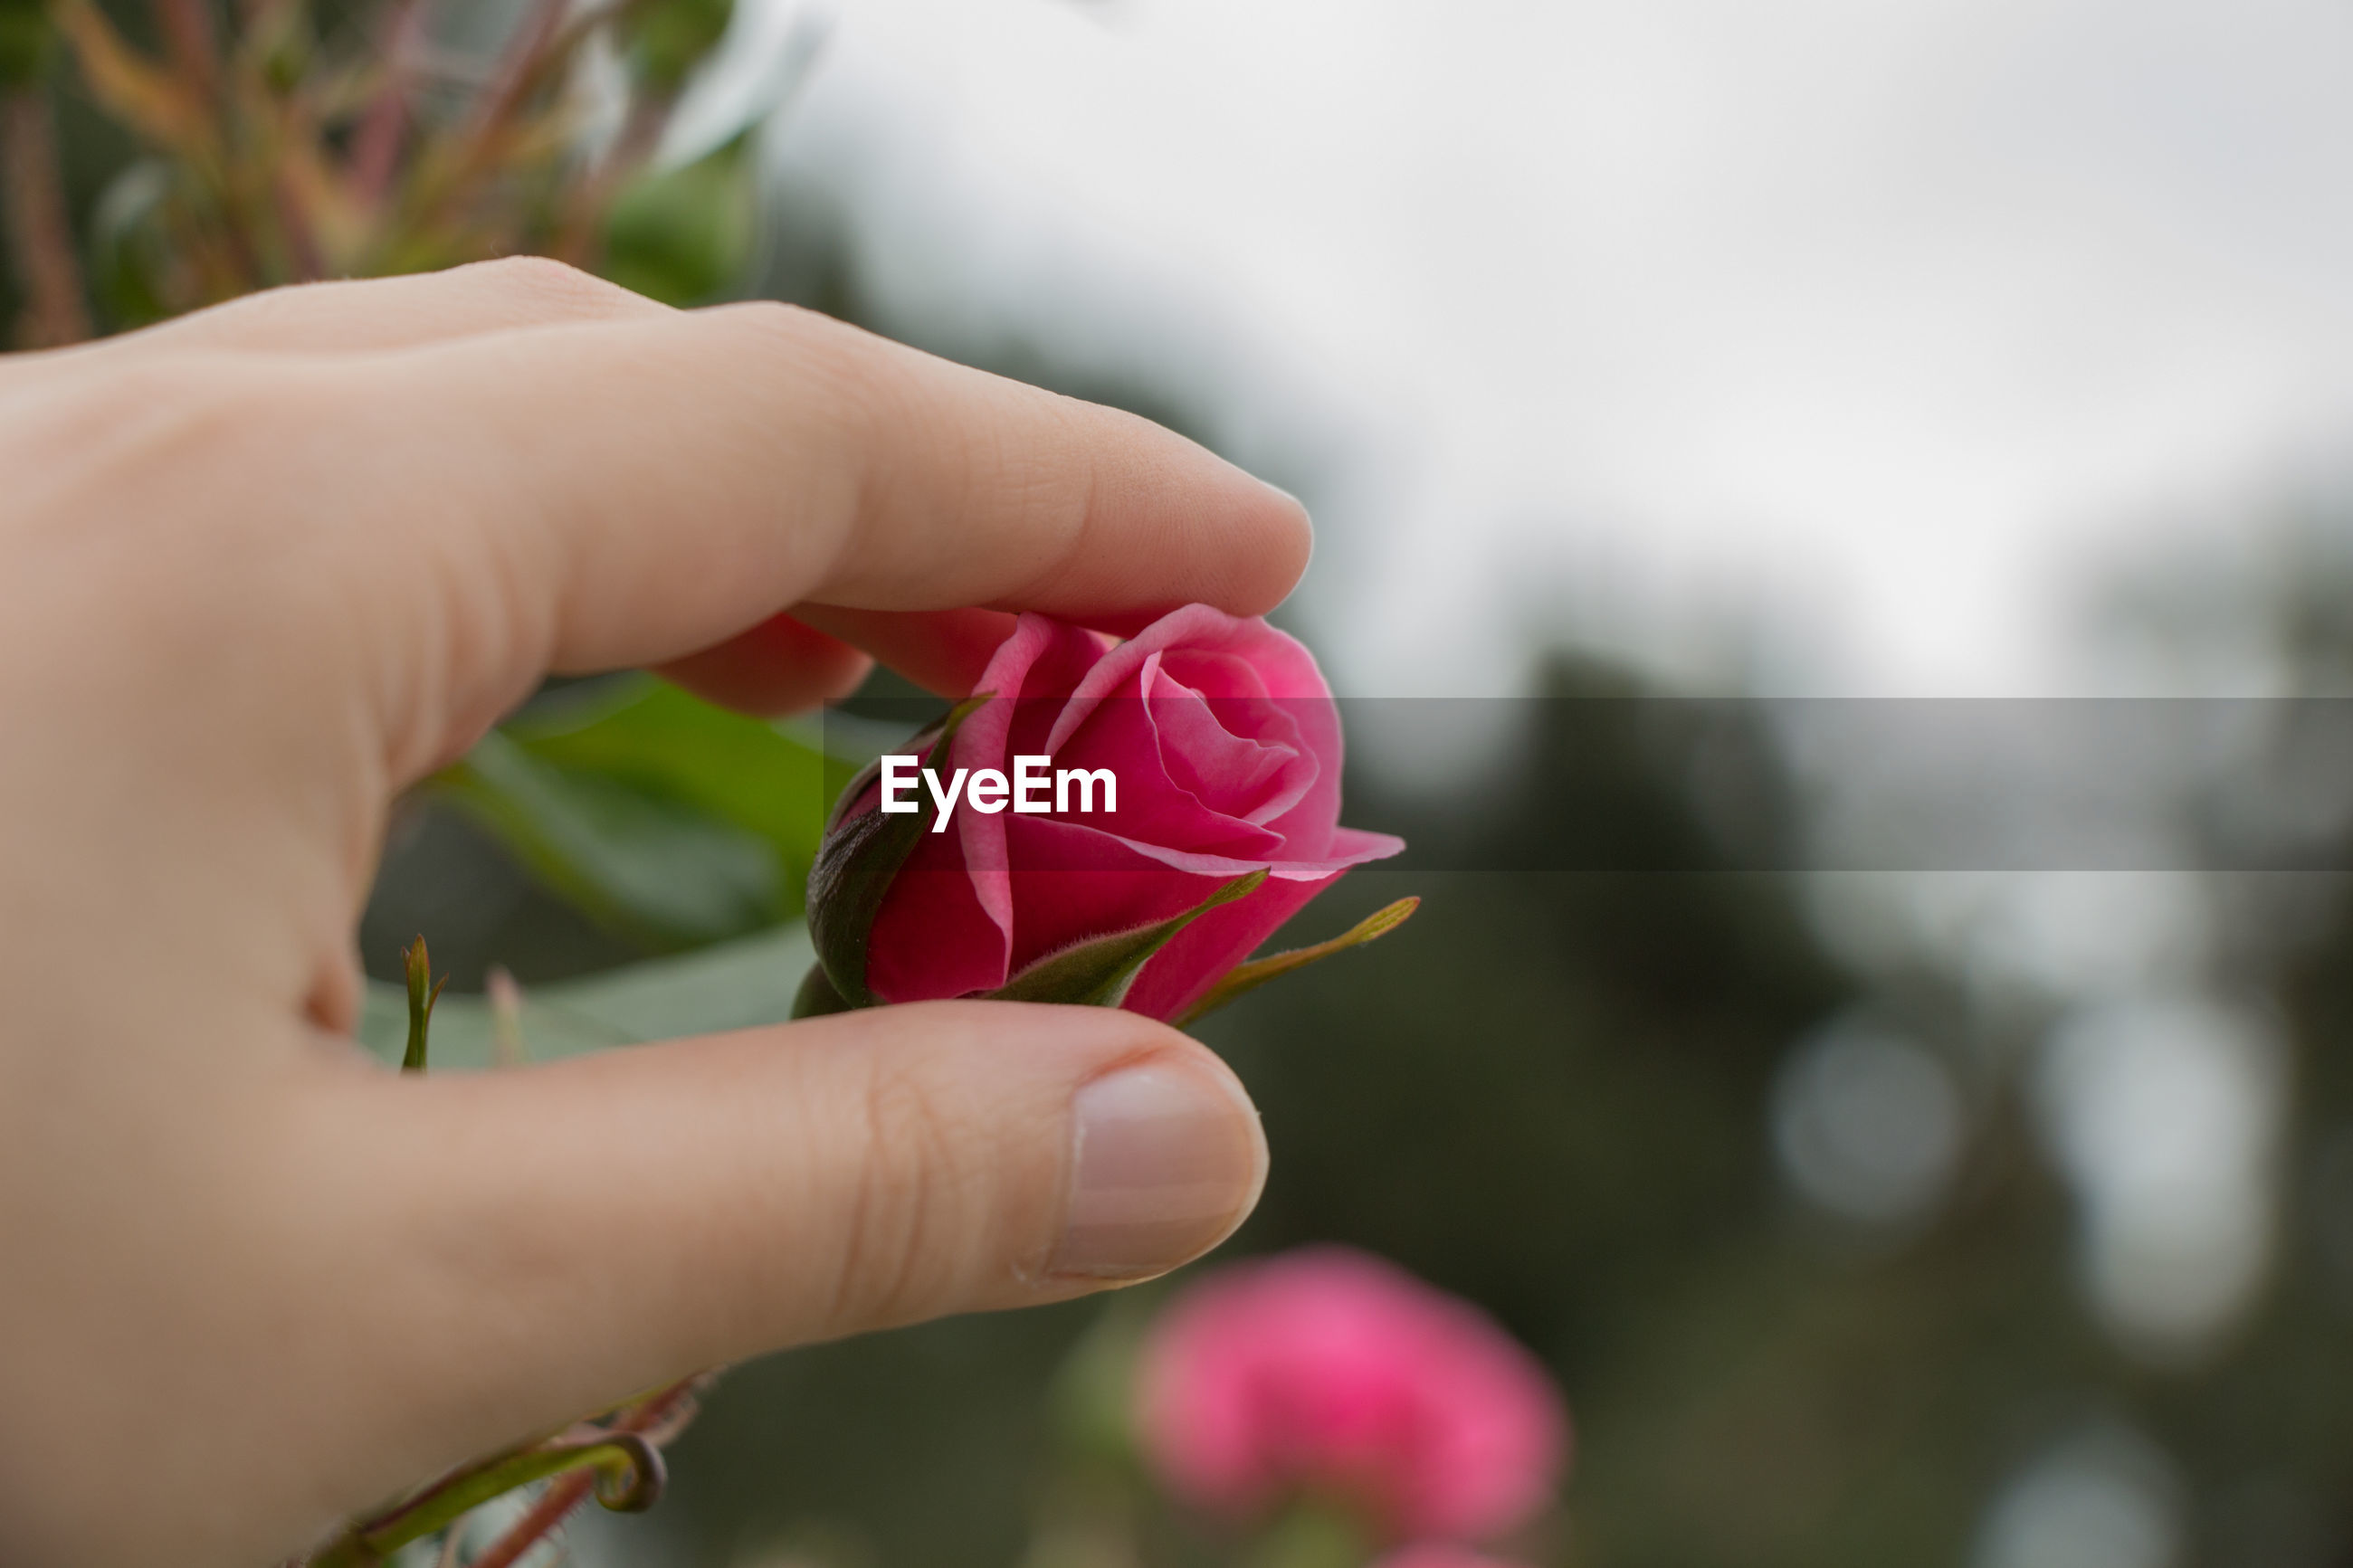 CLOSE-UP OF HAND HOLDING PINK ROSE AGAINST BLURRED BACKGROUND